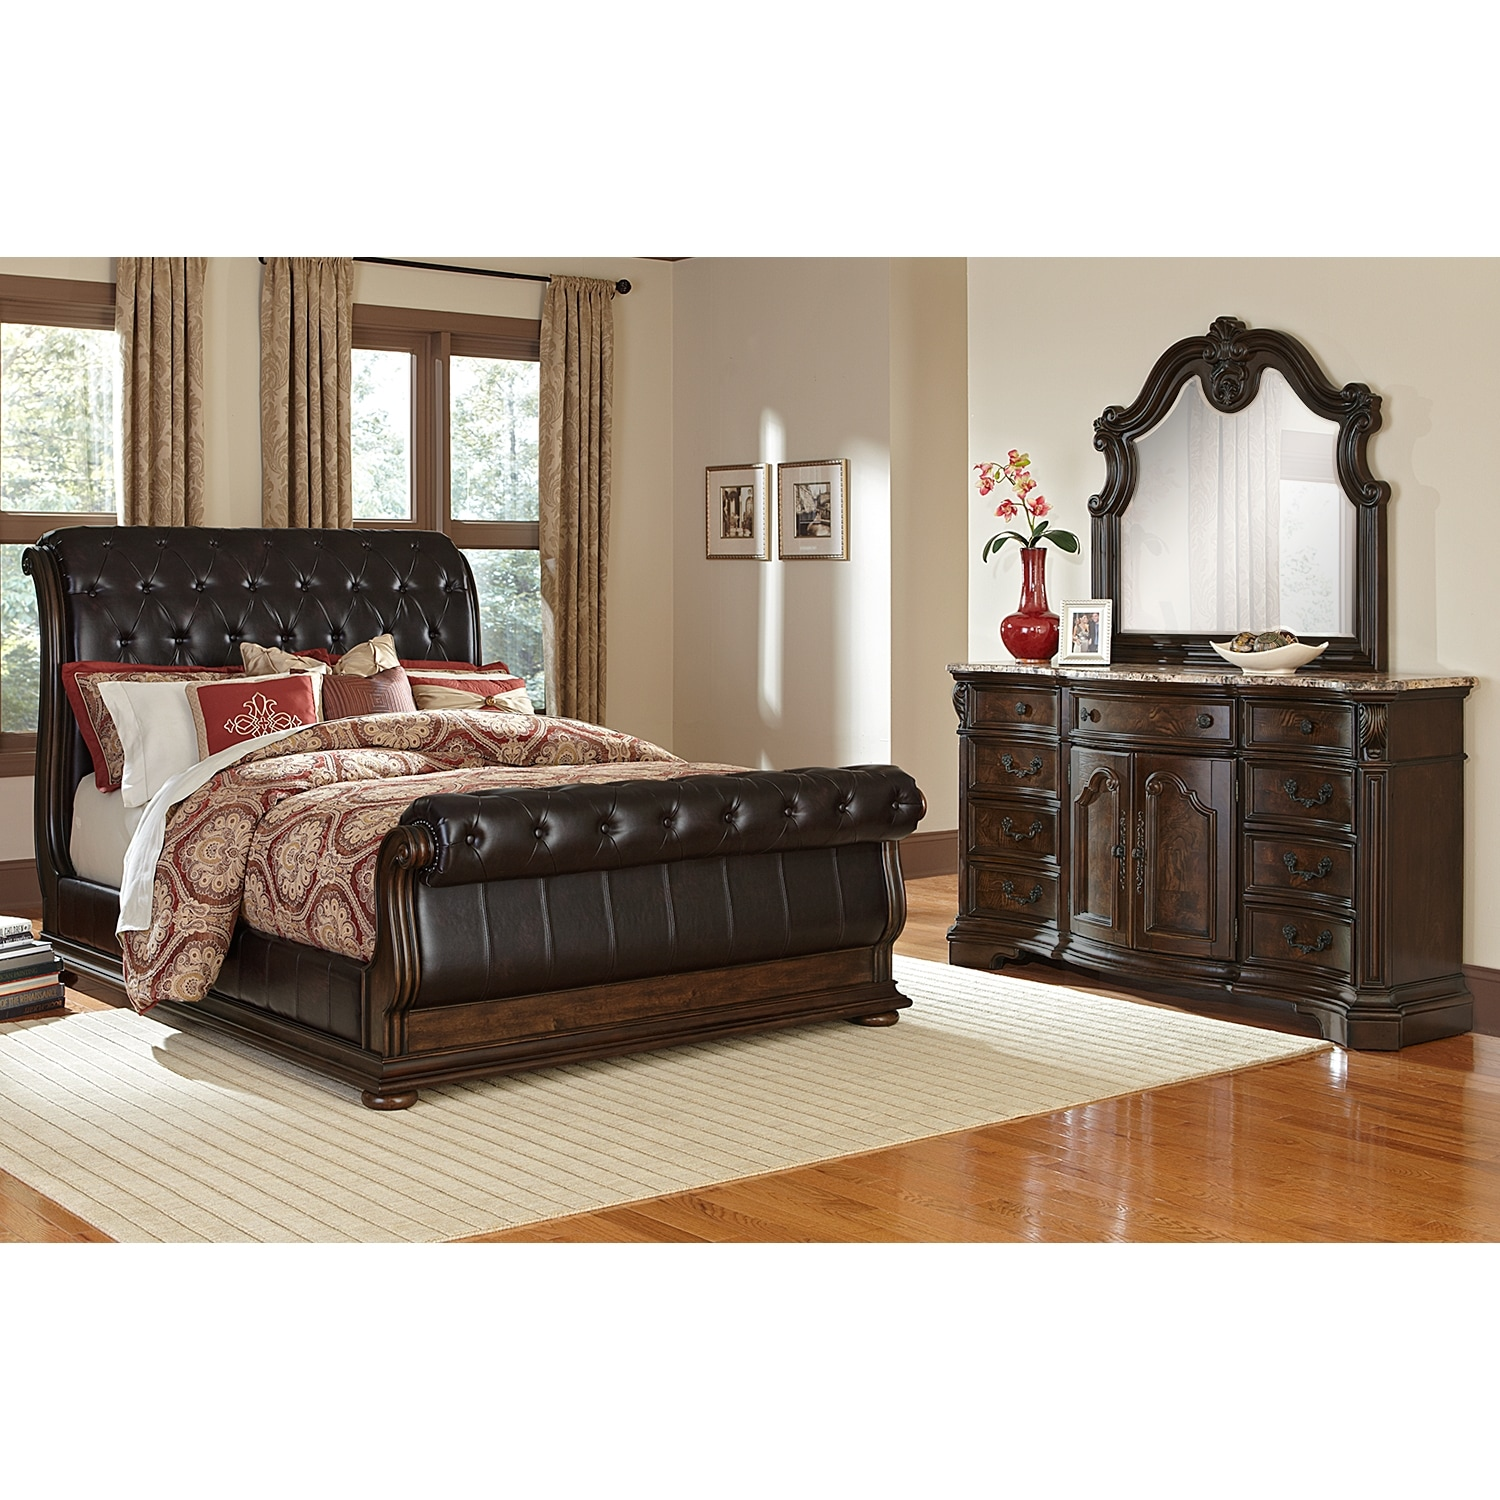 monticello 5 piece queen sleigh bedroom set pecan american signature furniture. Black Bedroom Furniture Sets. Home Design Ideas